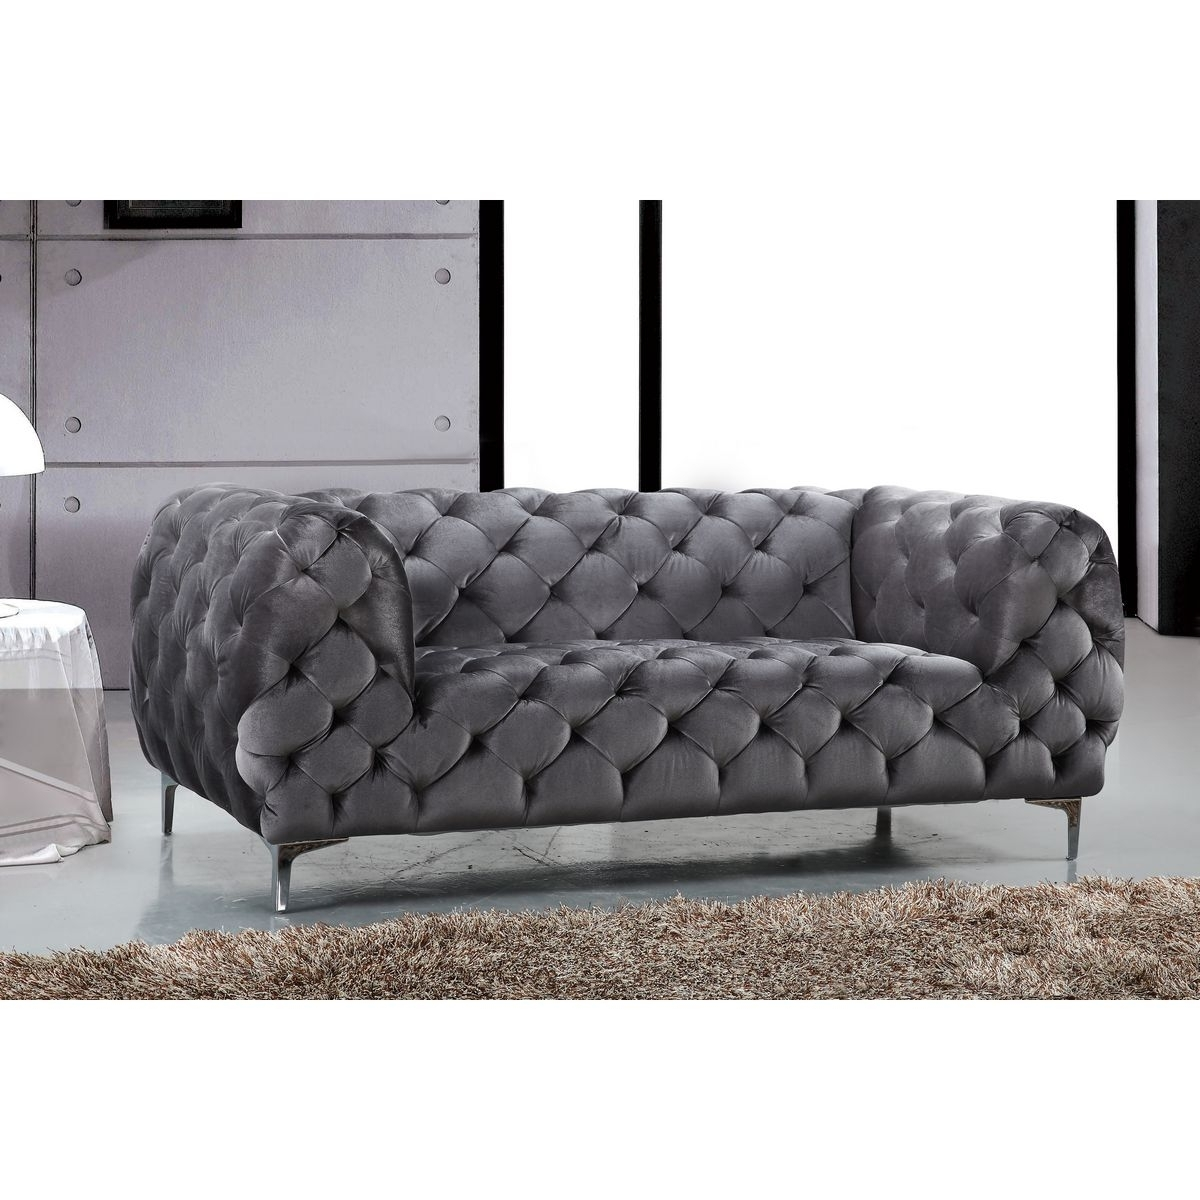 Most Current Furniture : Reclining Sofa Kijiji London Chesterfield Sofa Feet With Regard To Kijiji London Sectional Sofas (View 4 of 15)